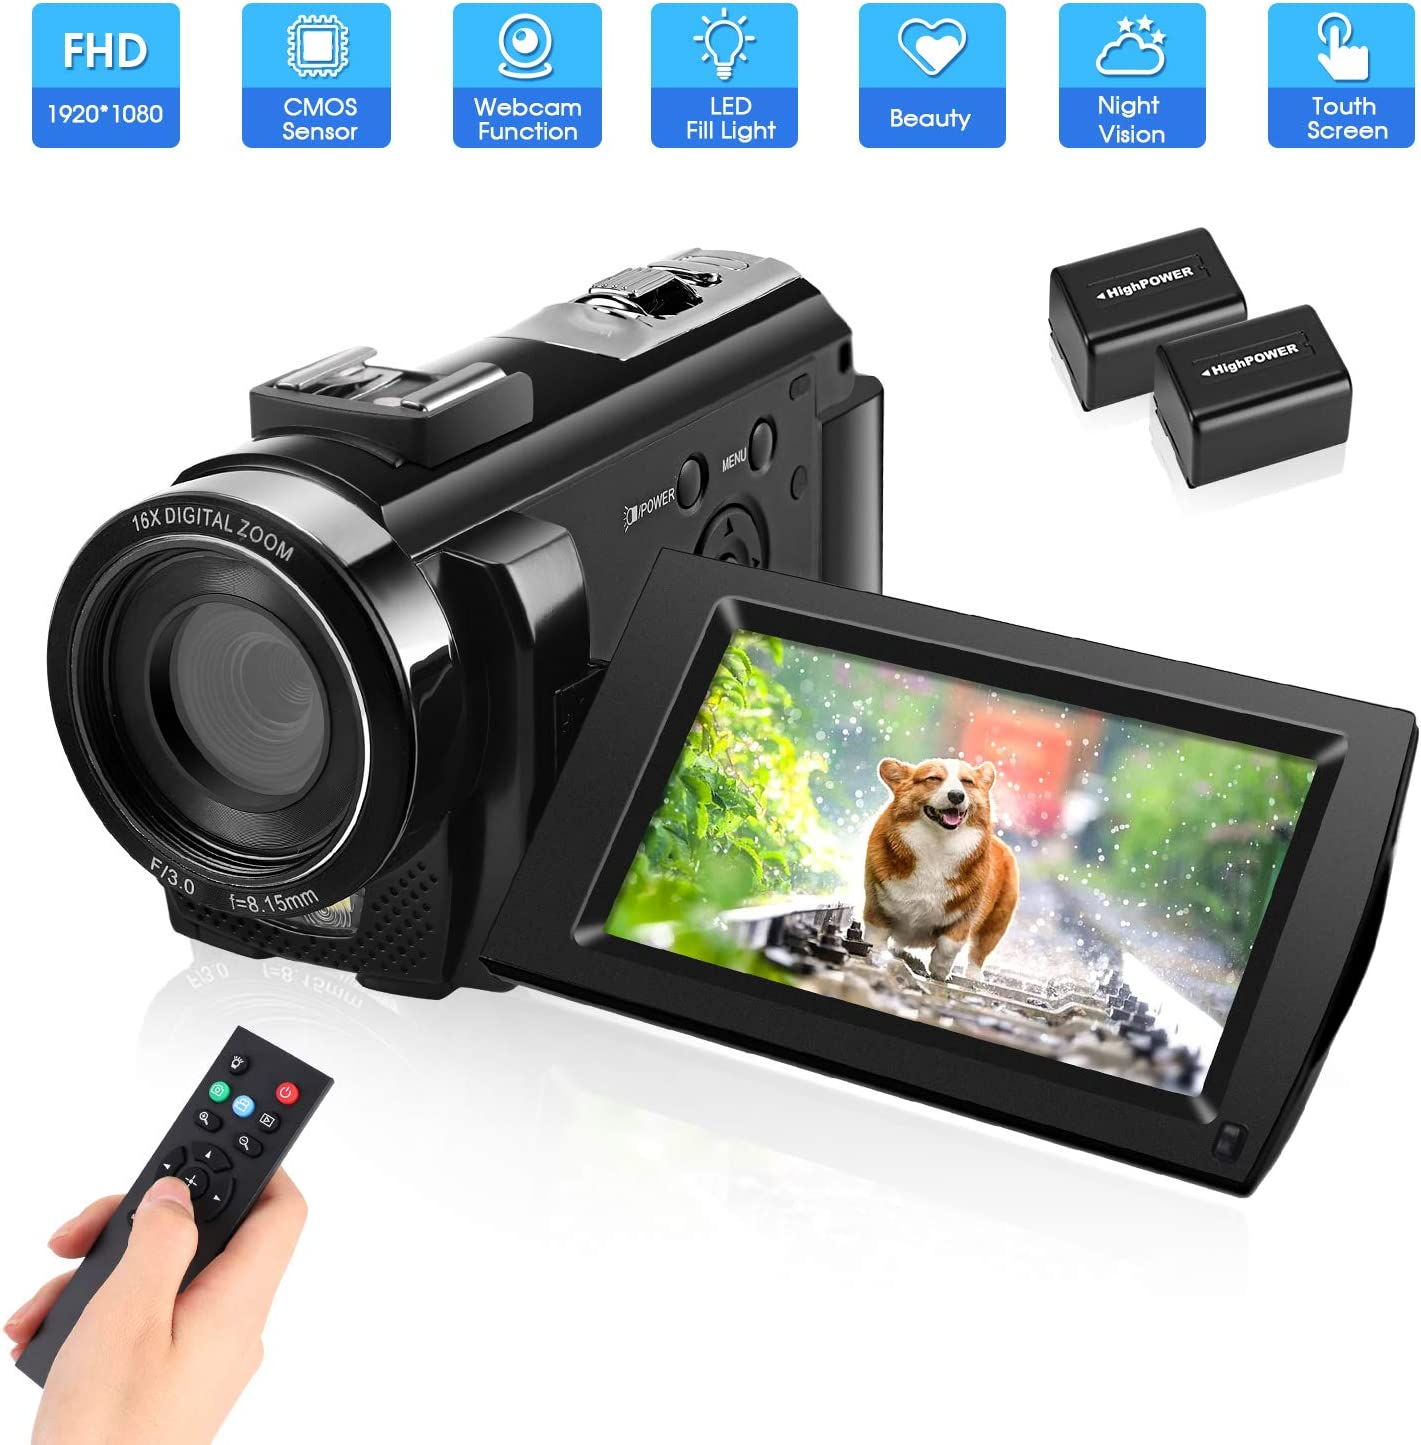 Video Camera Camcorder with 32GB Card Full HD 1080P 30FPS 16X Digital Zoom Digital Camera Vlogging Camera for YouTube 3.0 Inch LCD 270 Degrees IPS Screen LED with 2 Batteries